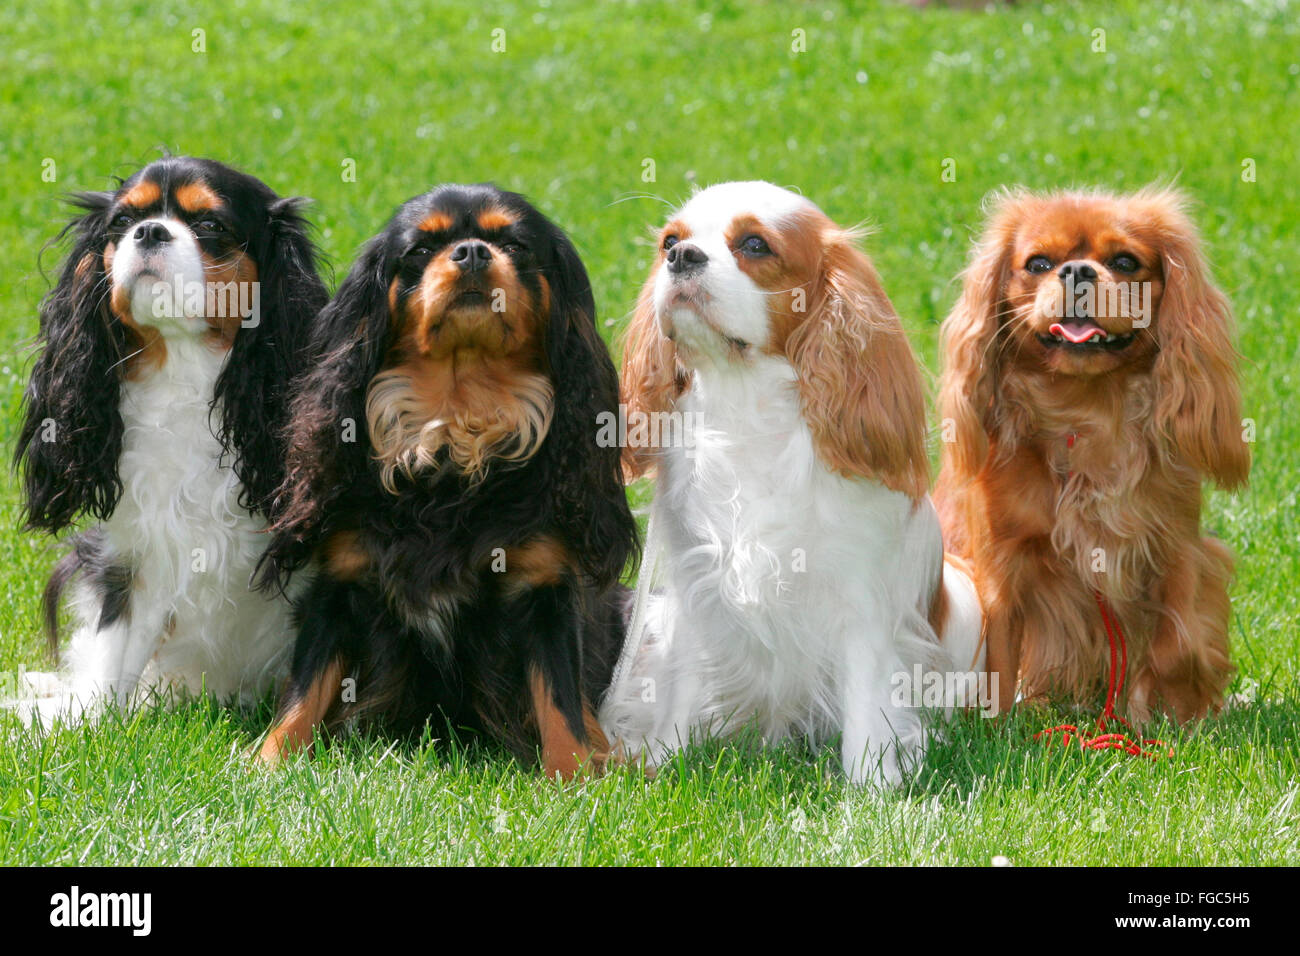 Cavalier King Charles Spaniel Four Adults Of Different Color Sitting Next To Each Other On